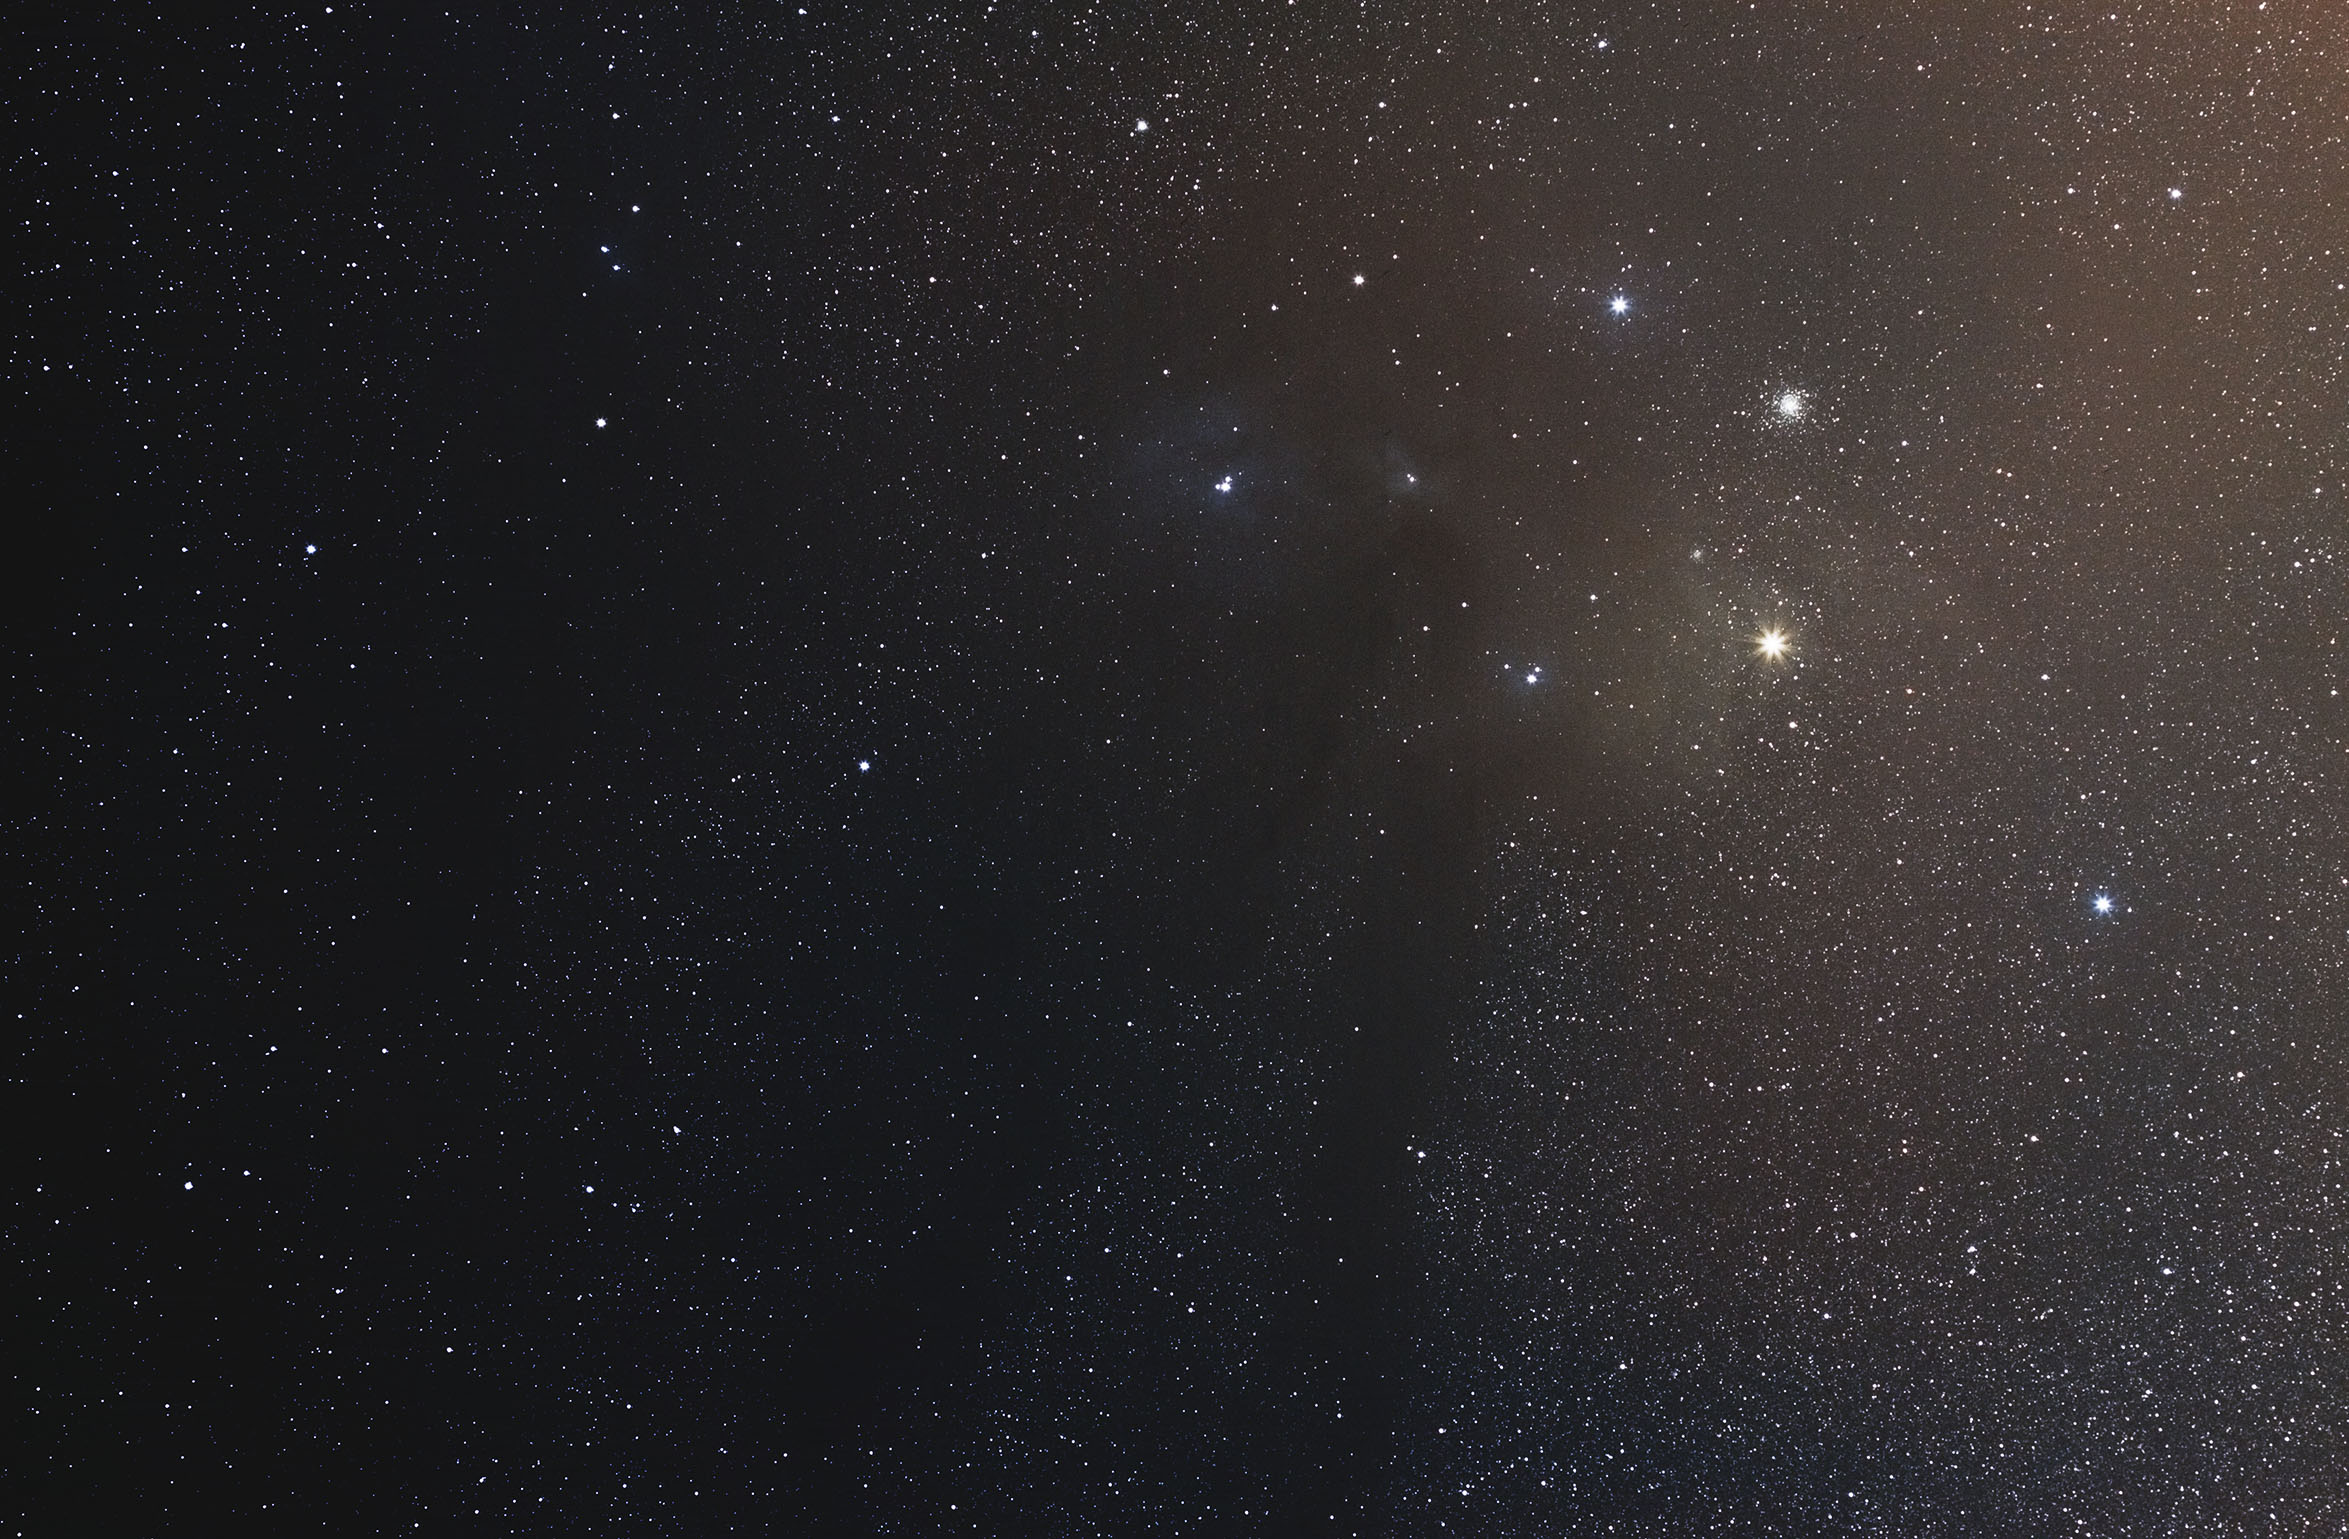 The bright Antares, the Rho Ophiuchi clouds, and globular cluster M4 all make an appearance in my first wide field shot of the sky.